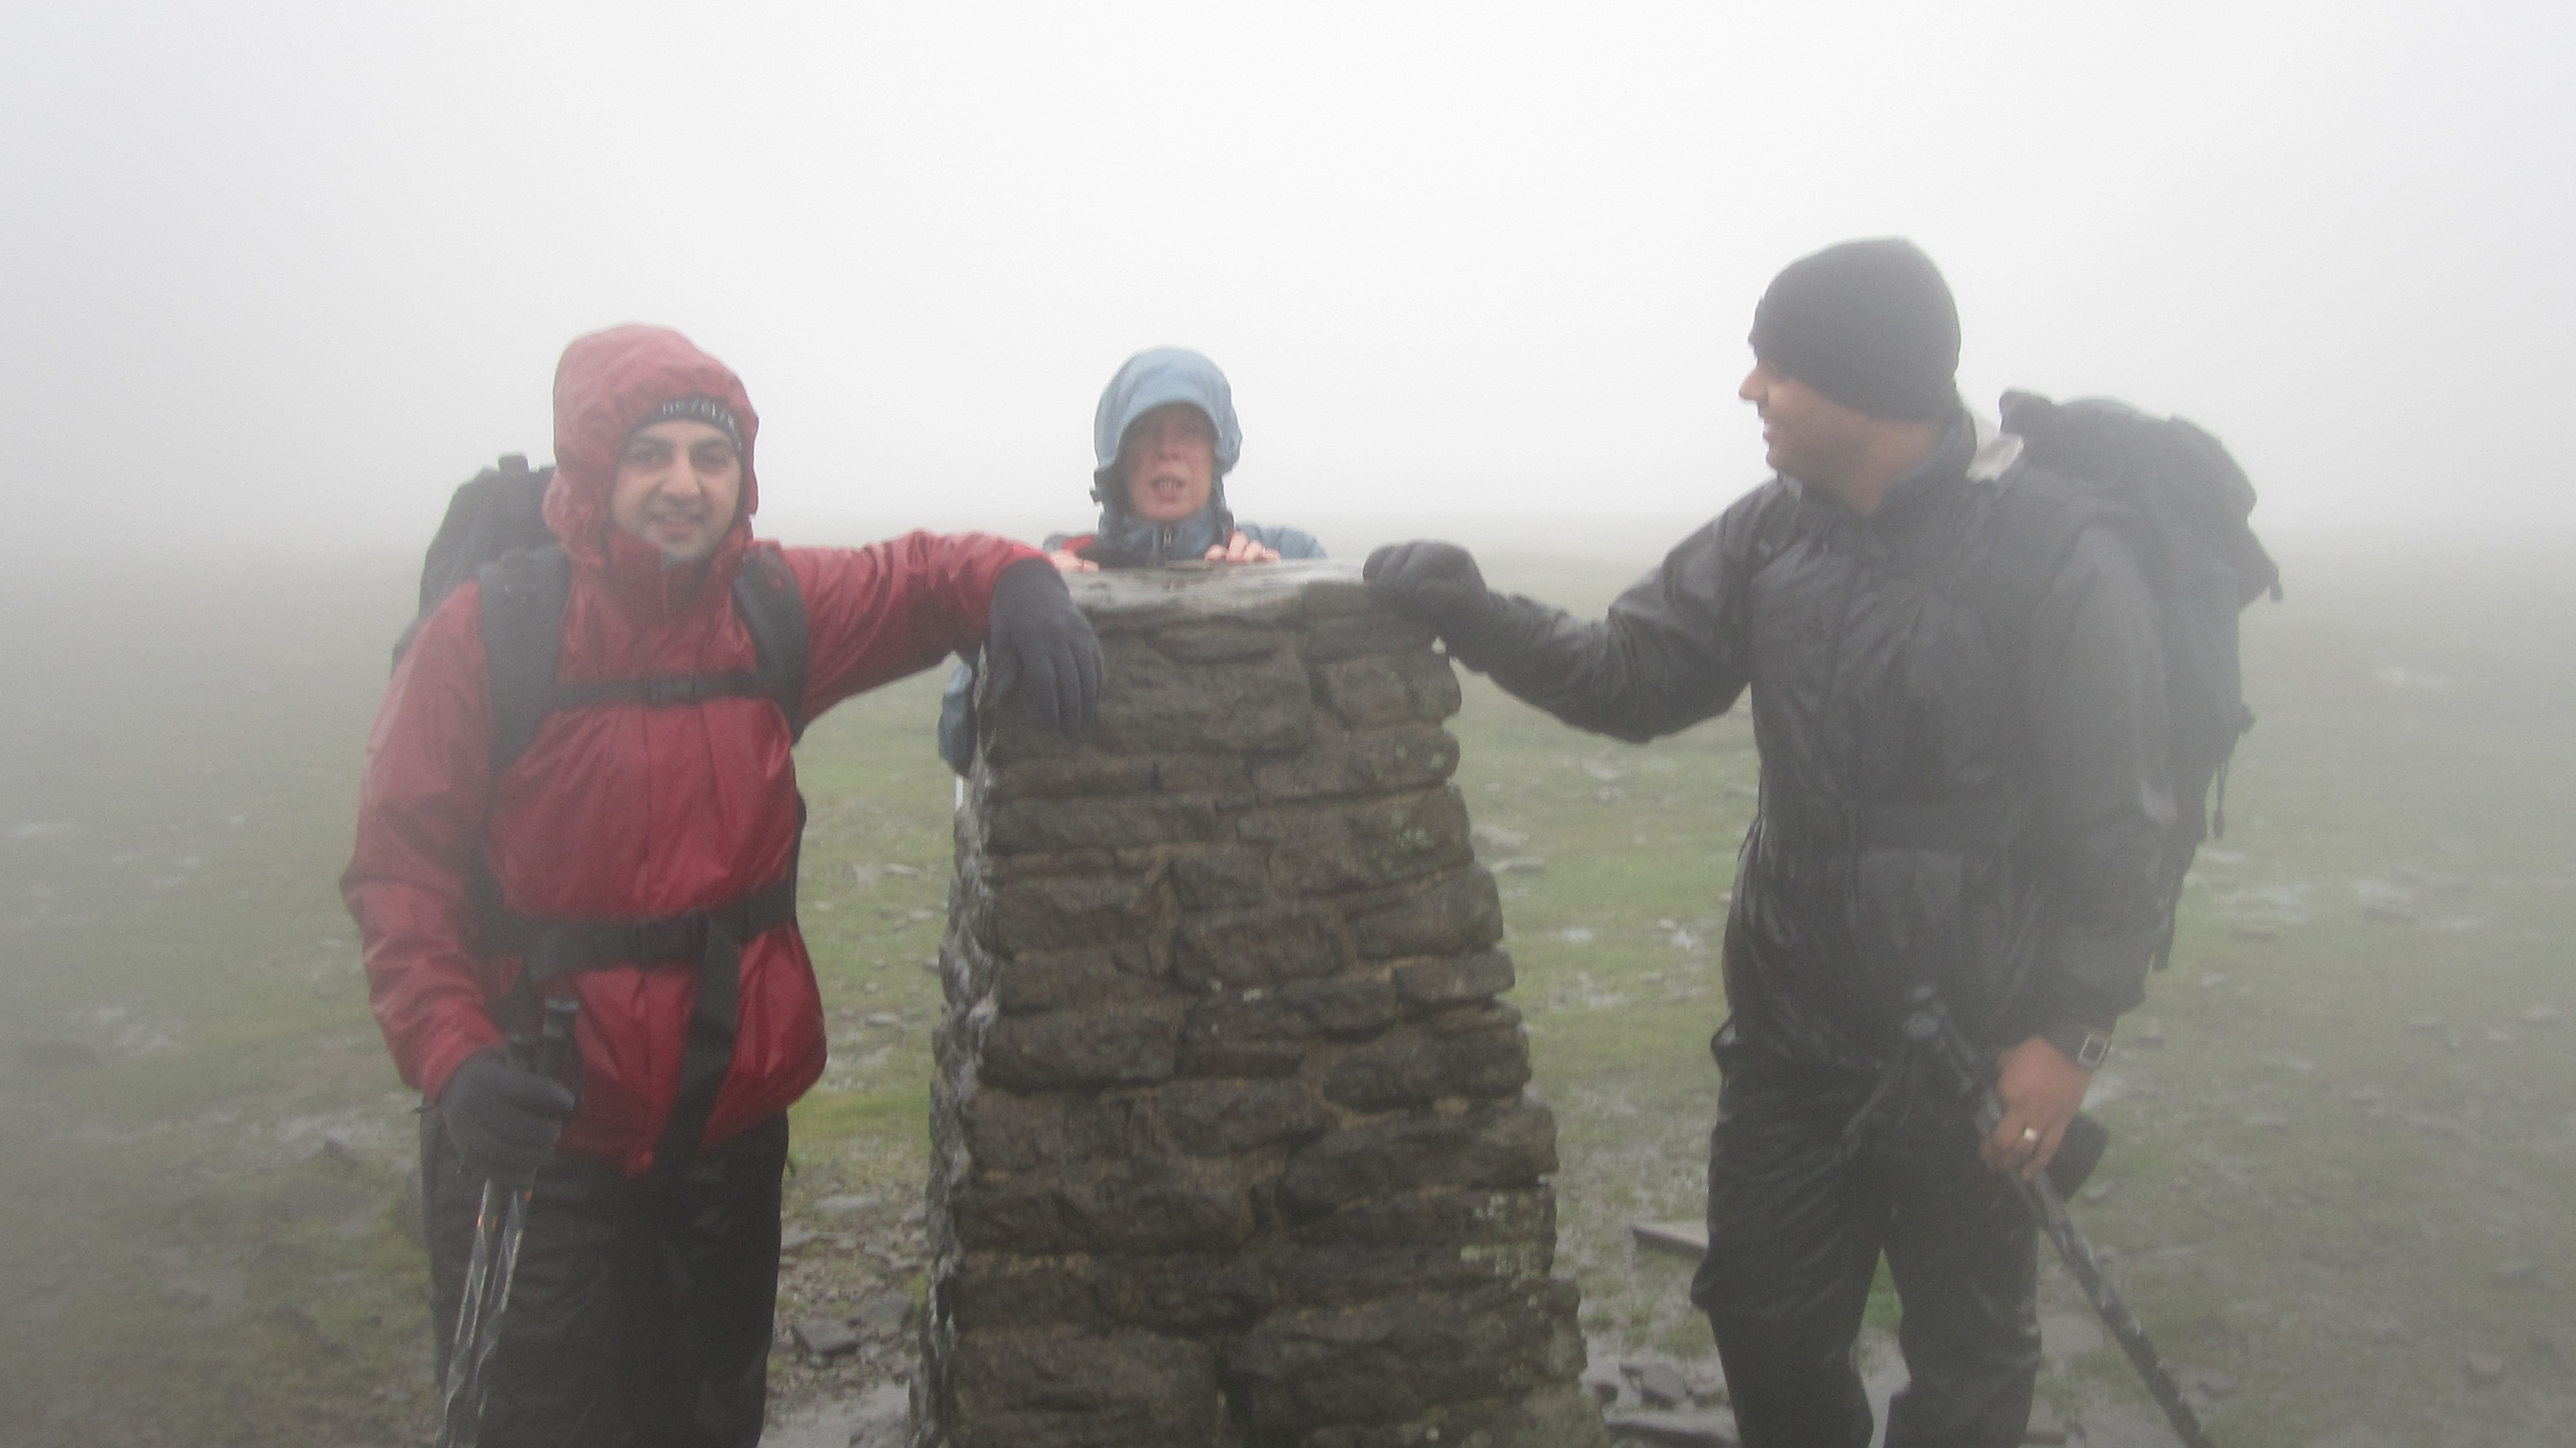 Helen (centre) and Jag (right) taking on the Yorkshire Three Peaks challenge